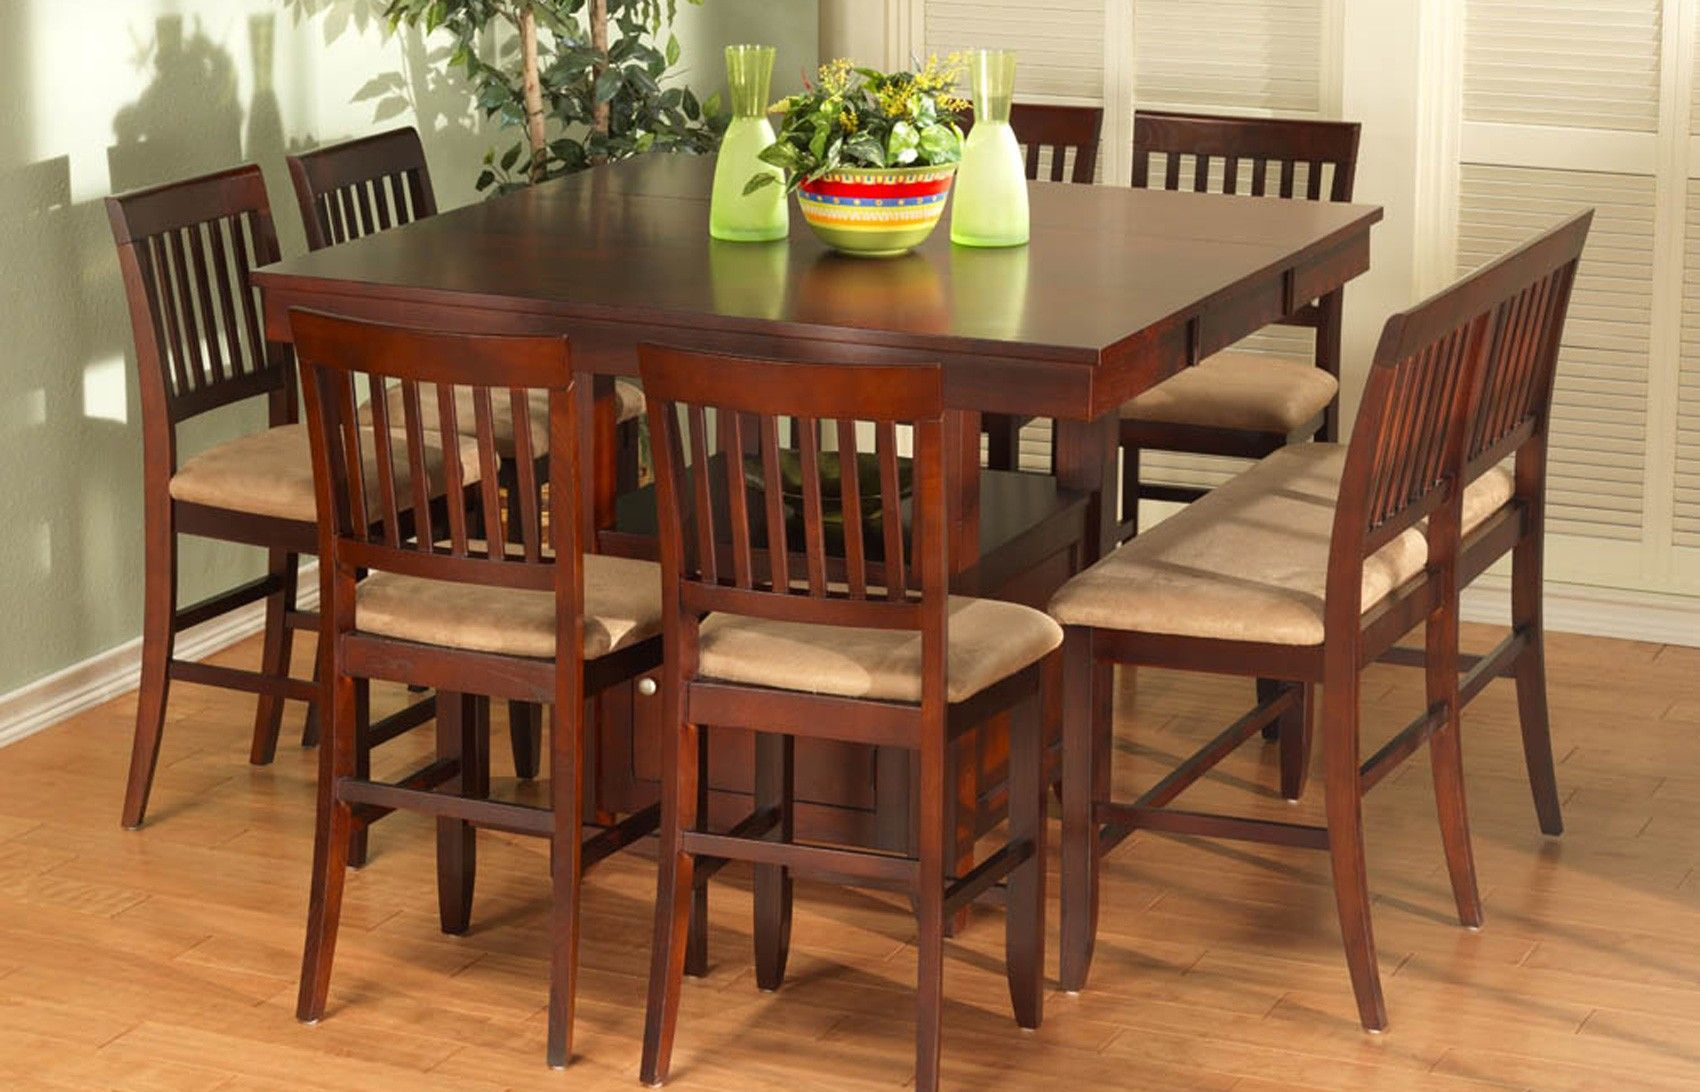 Cherry kitchen table and chairs - 17 Best Images About Counter Table Sets On Pinterest Counter Stools Saddles And Counter Height Table Sets